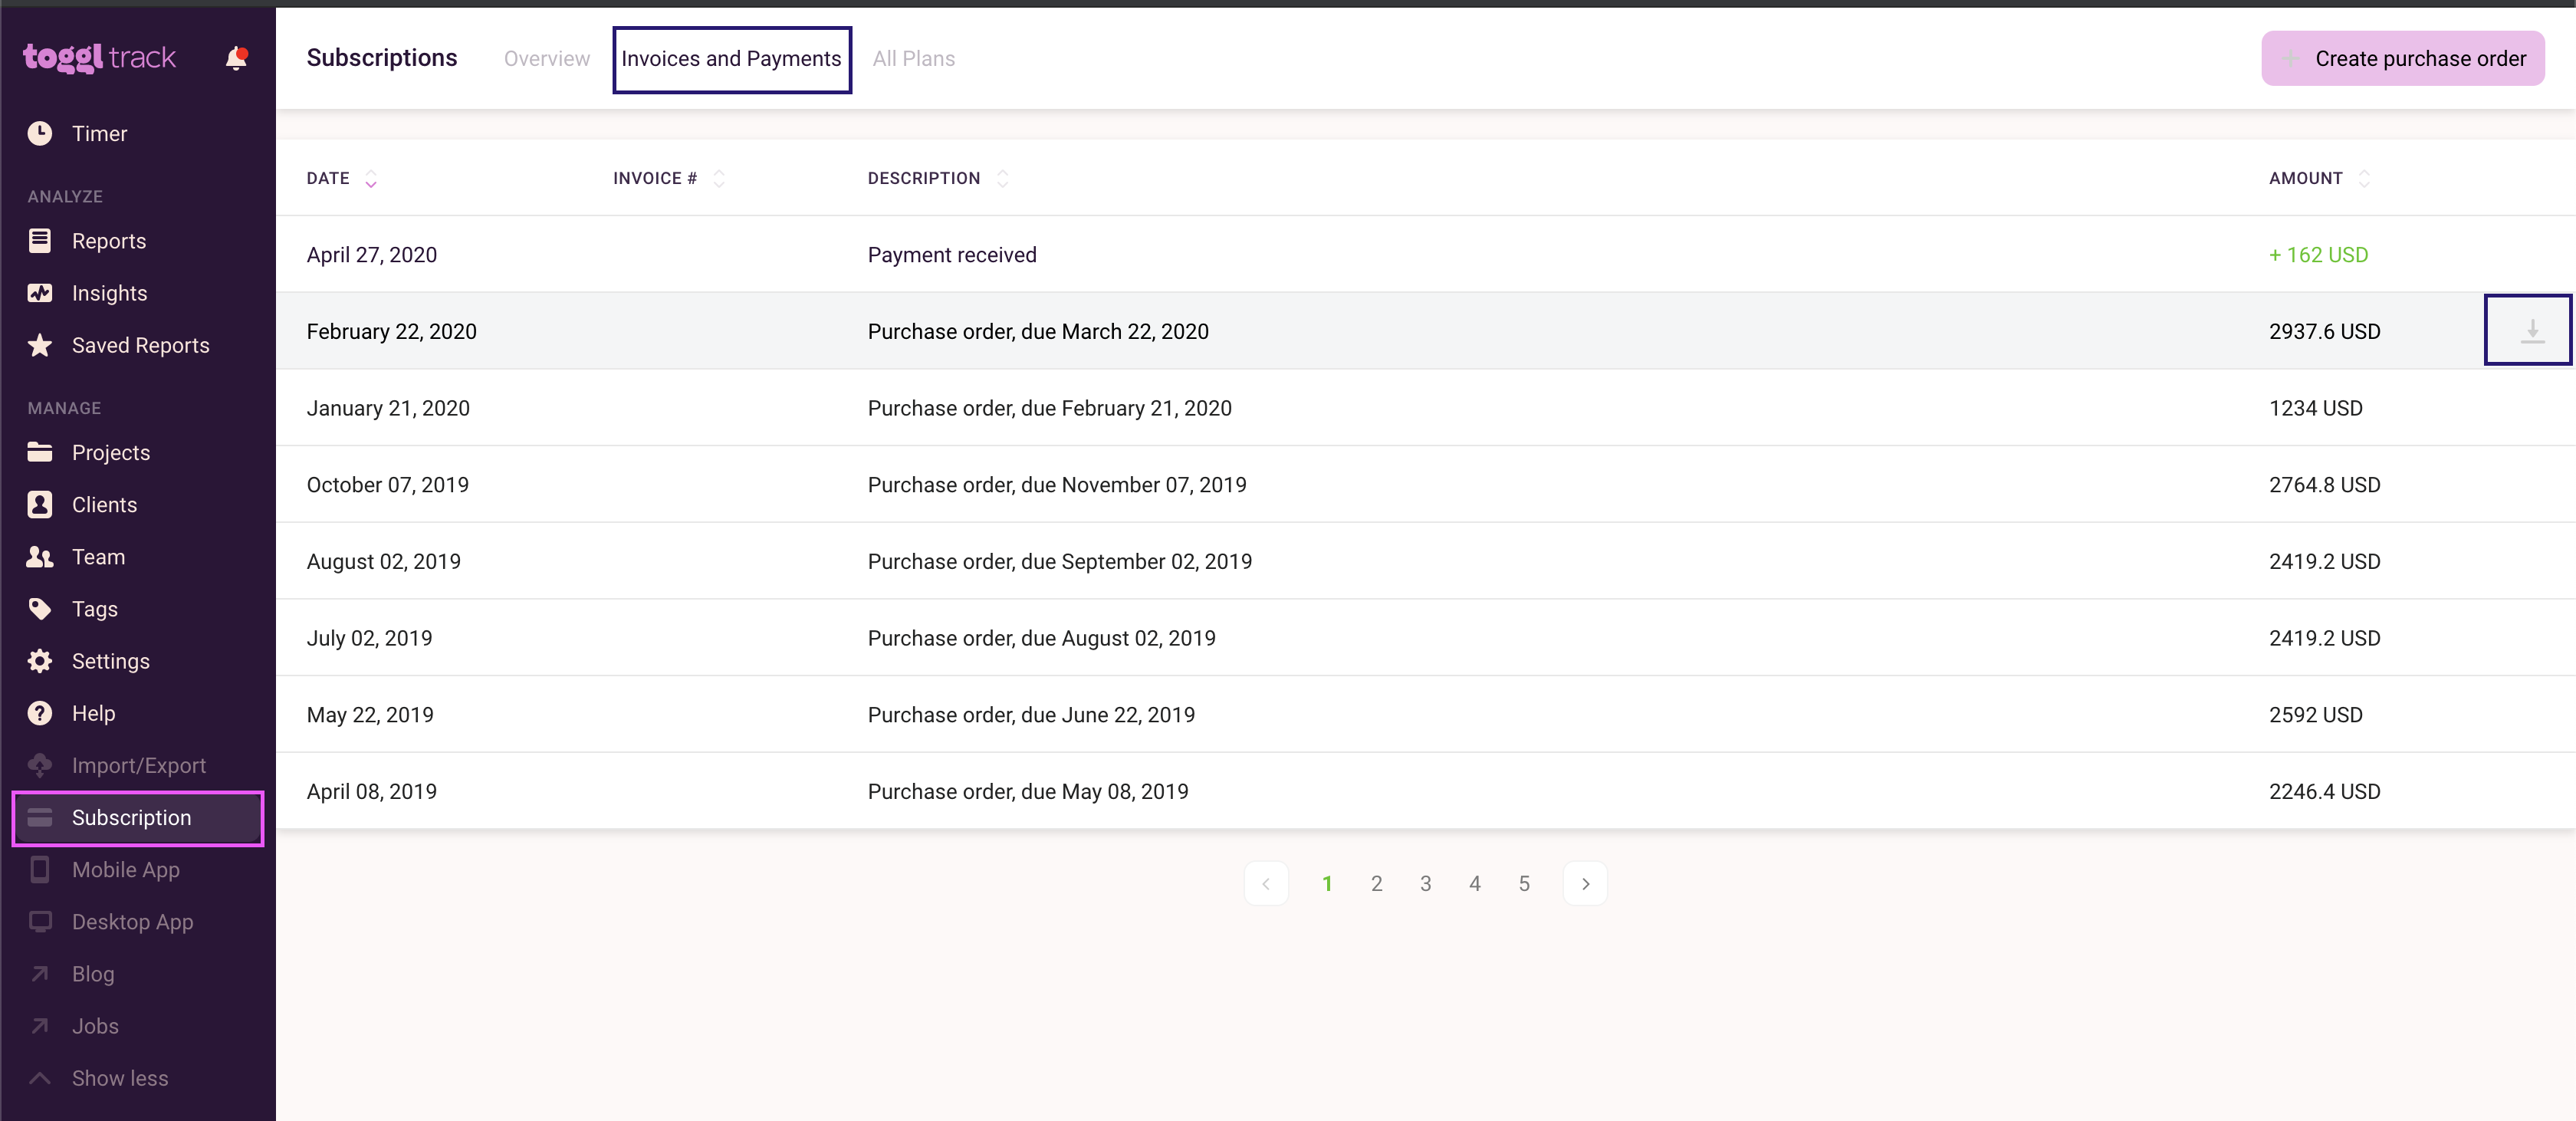 downloading invoices on subscription page - invoices and payments tab